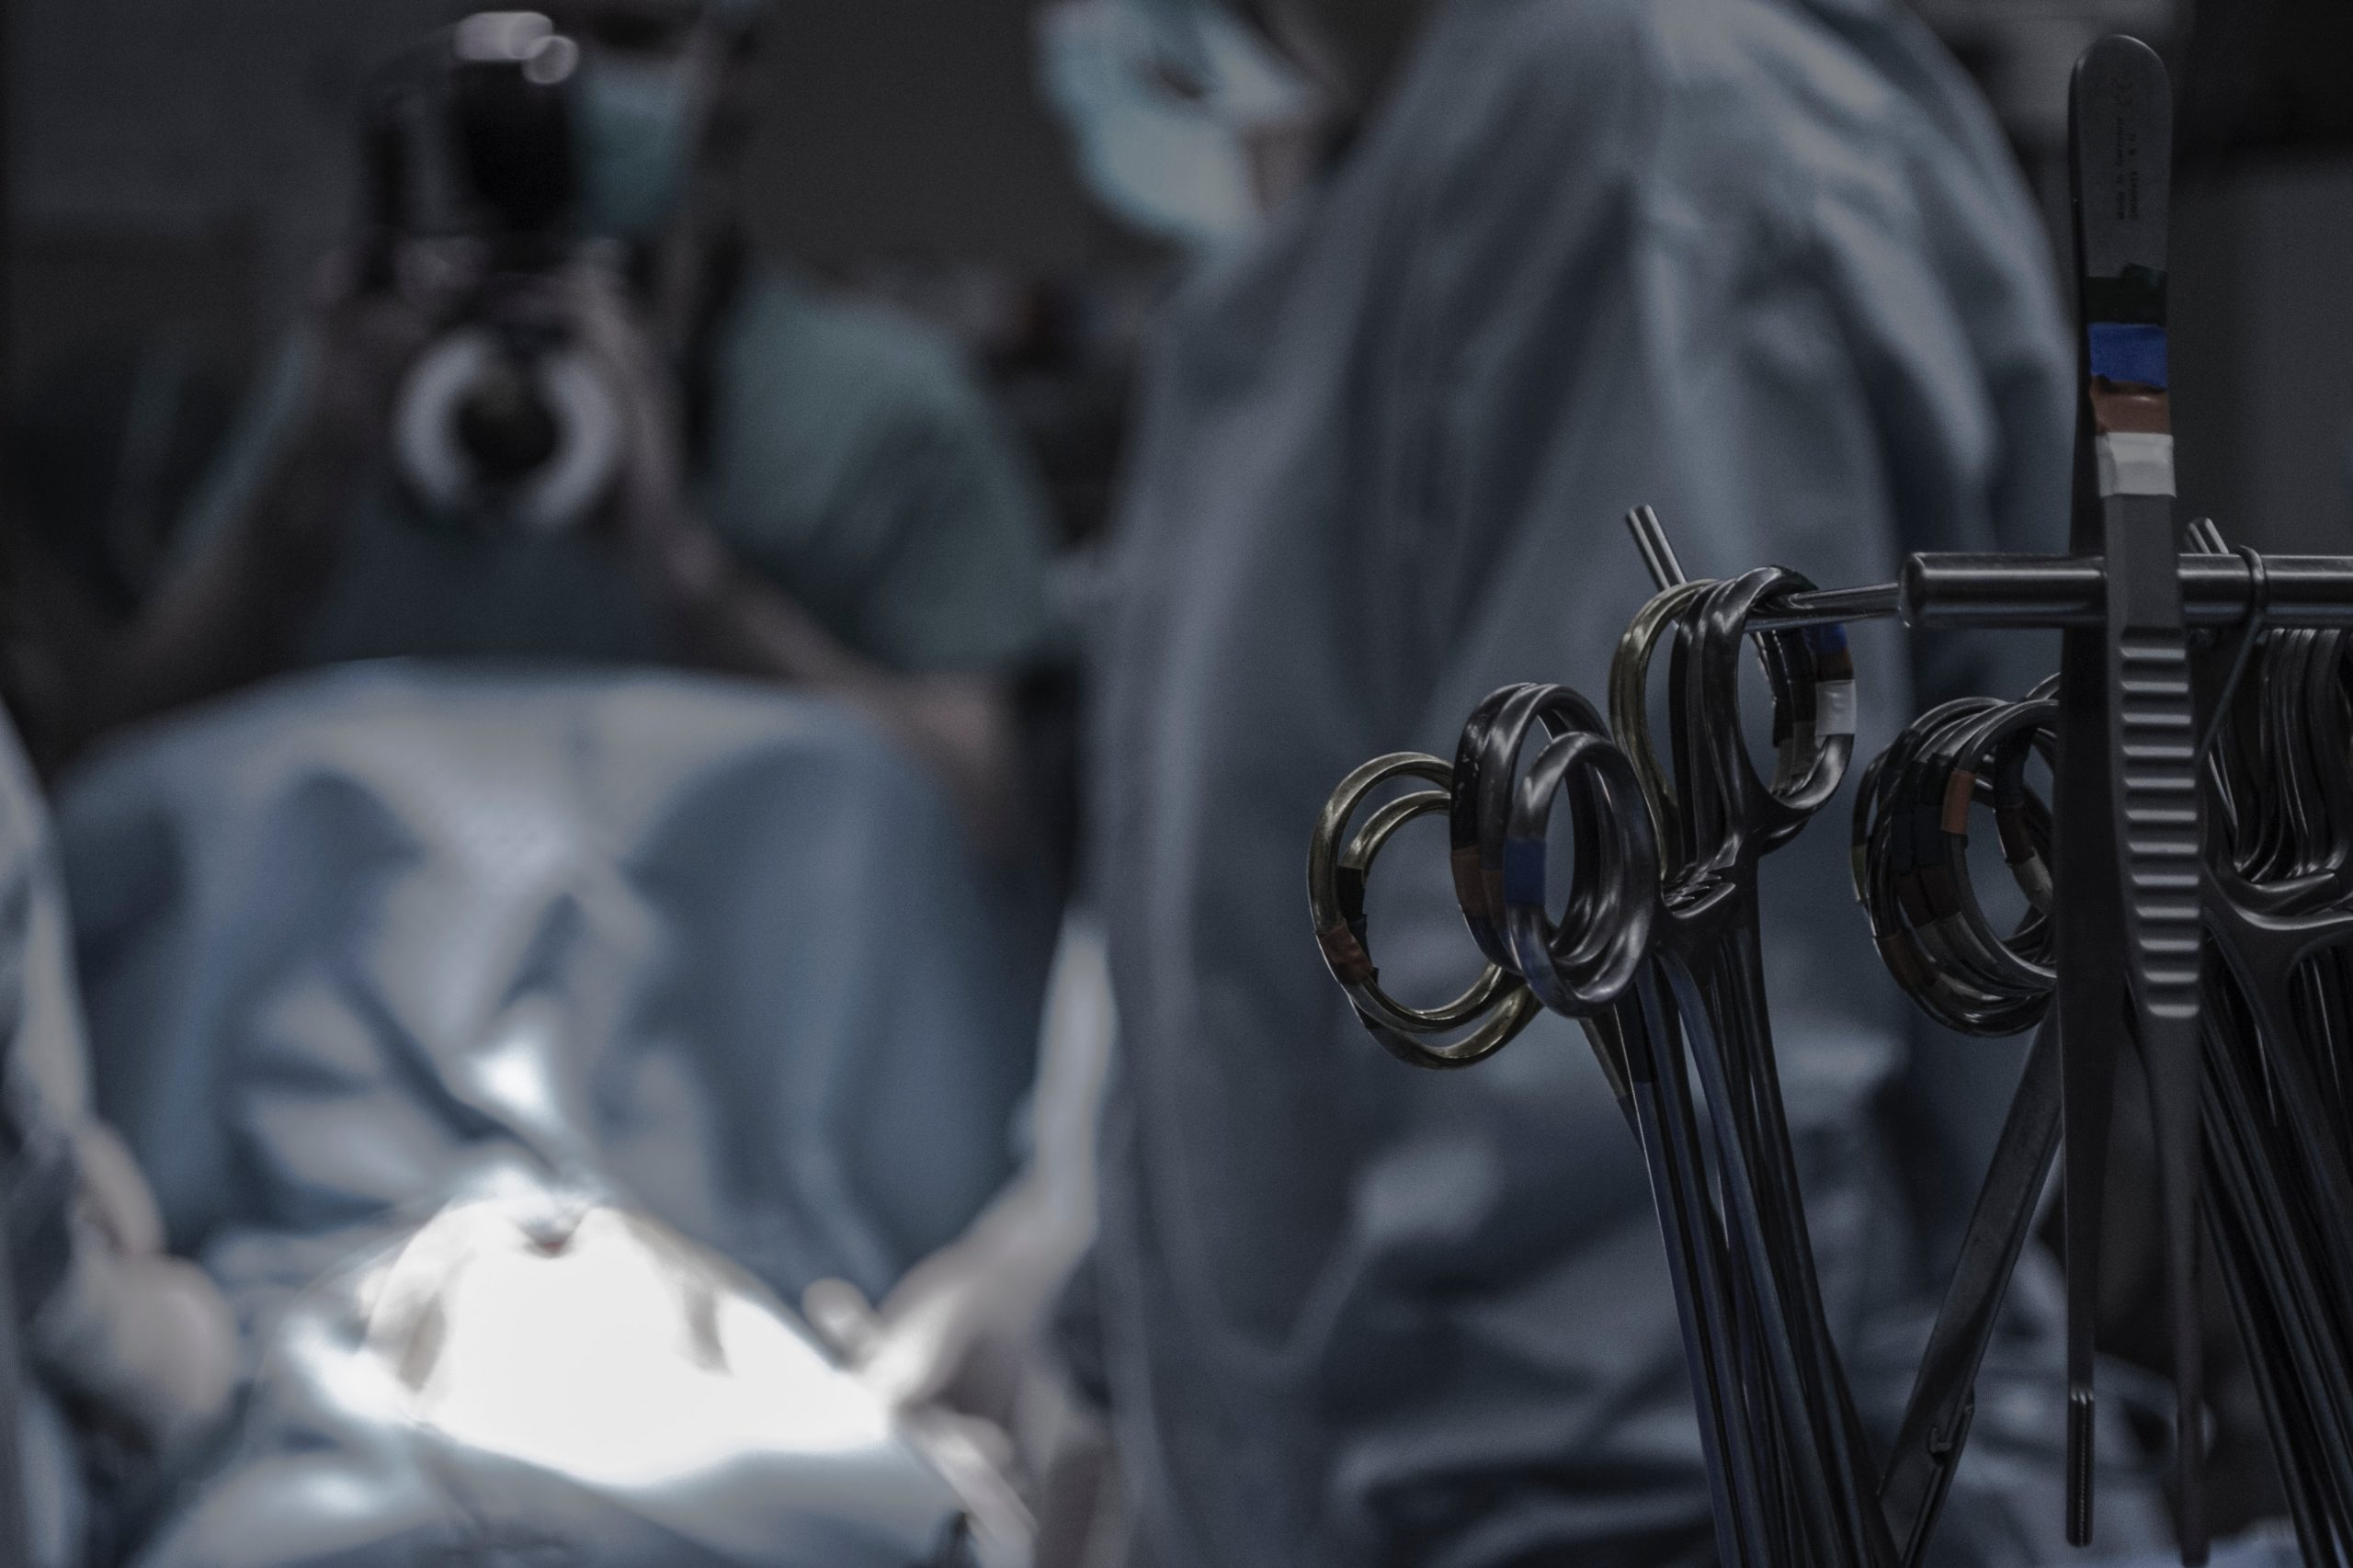 Fancy being operated on by a robot?